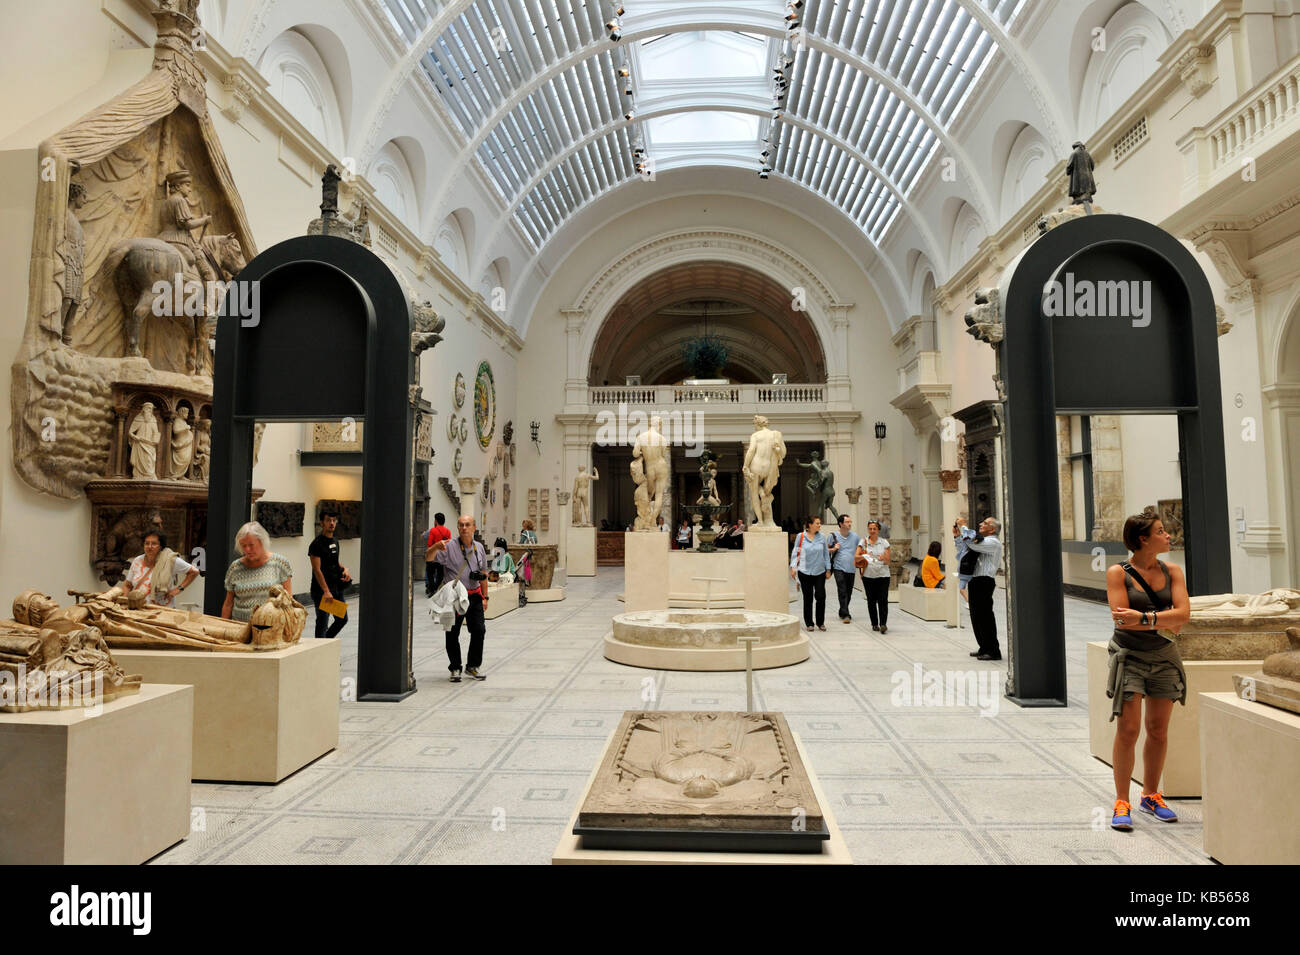 United Kingdom, London, South Kensington, Victoria and Albert Museum (V&A Museum) founded in 1852, room dedicated - Stock Image